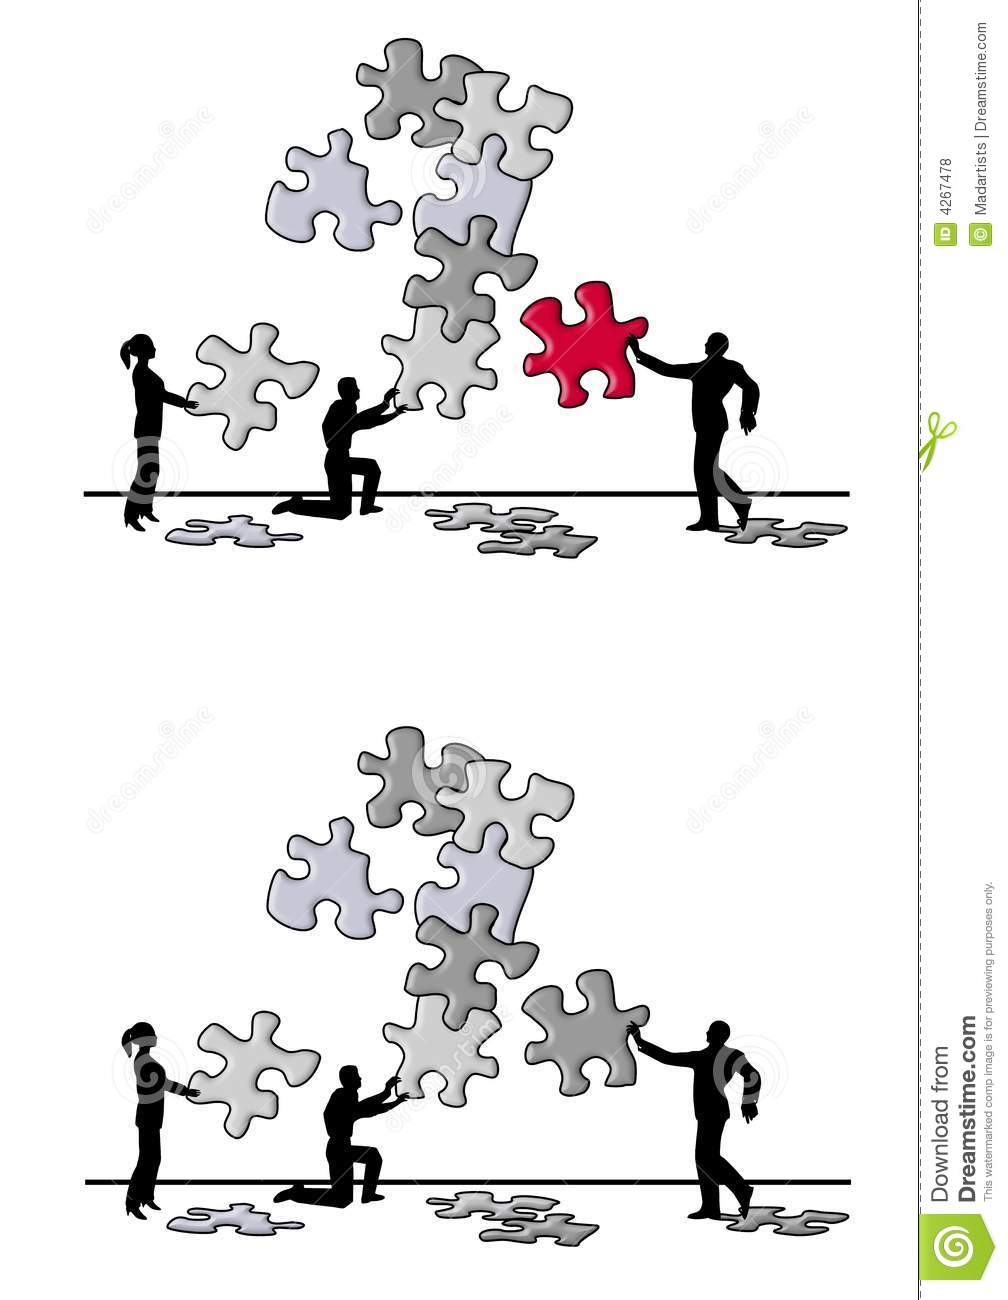 problem and solution puzzle piece graphic organizer - jigsaw puzzle